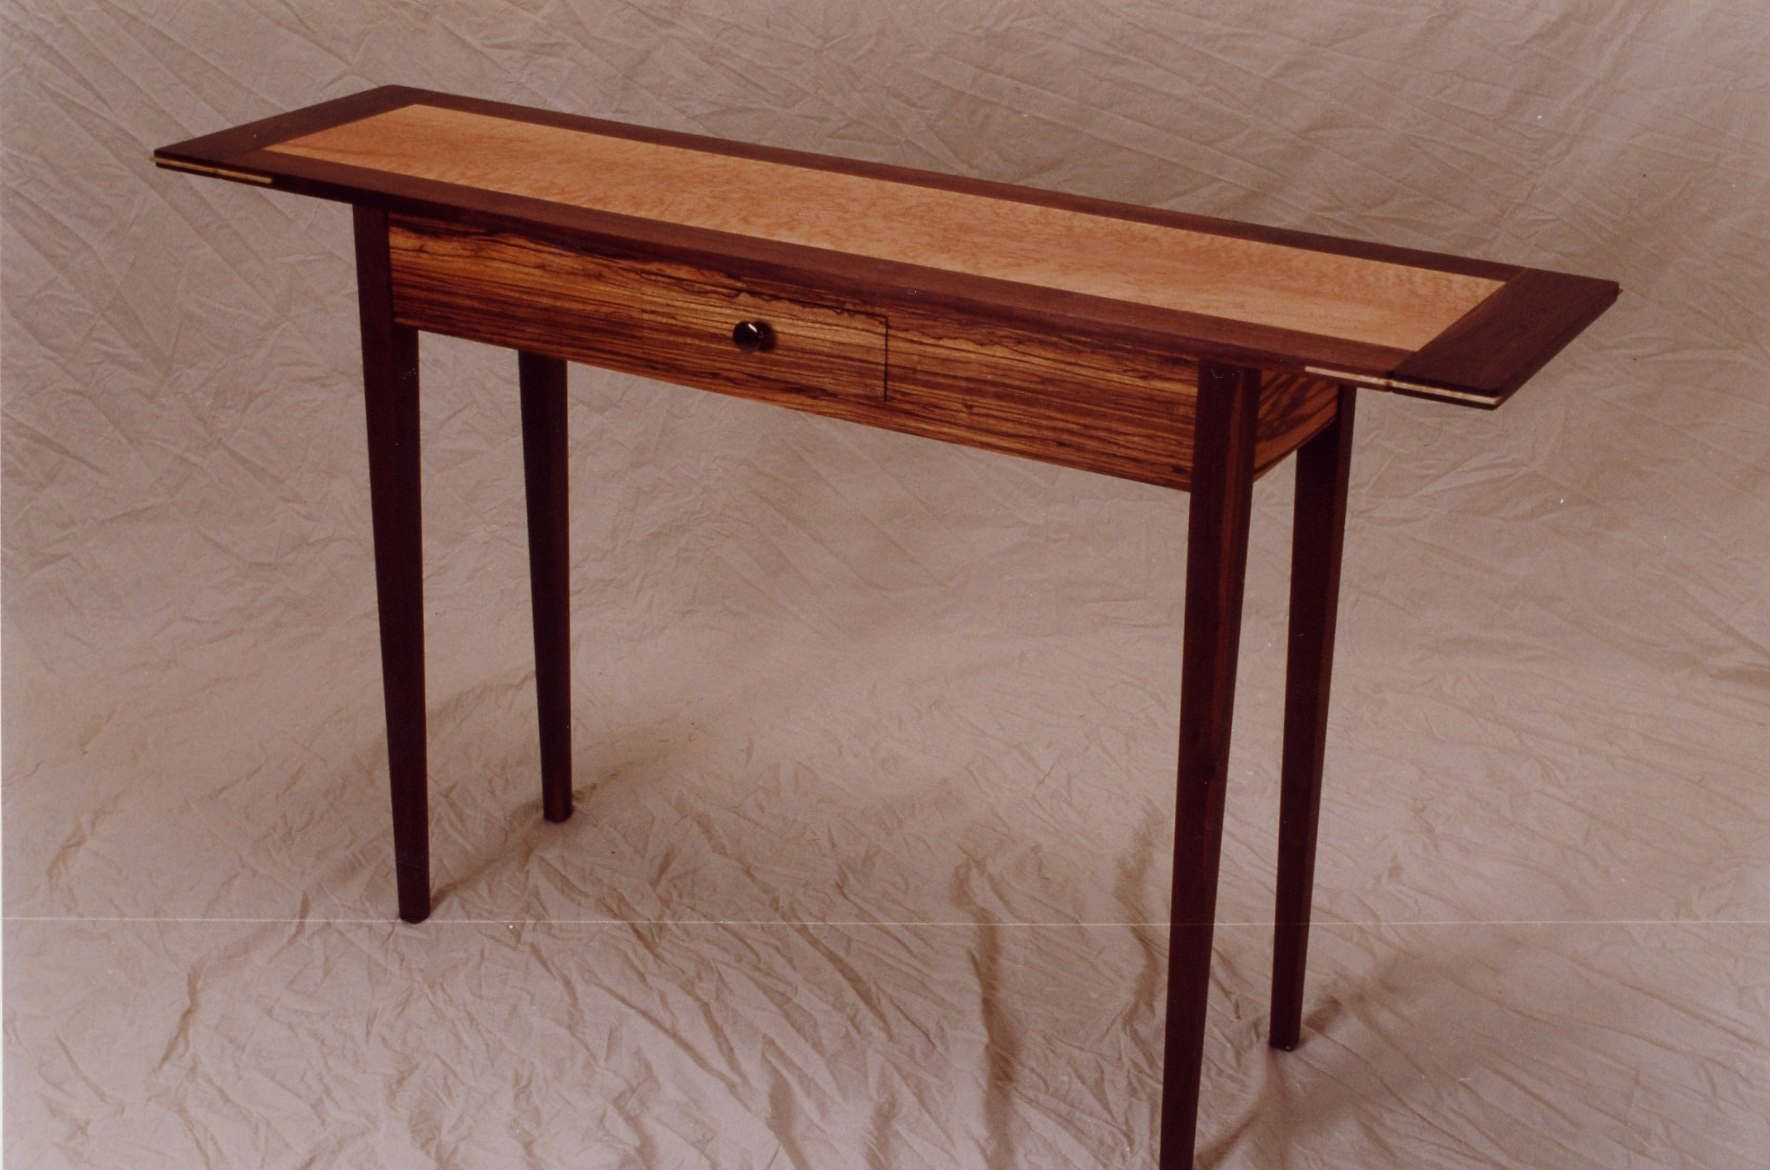 Wooden Hall Tables entryway tables, hall tables, accent tables | custom entry tables